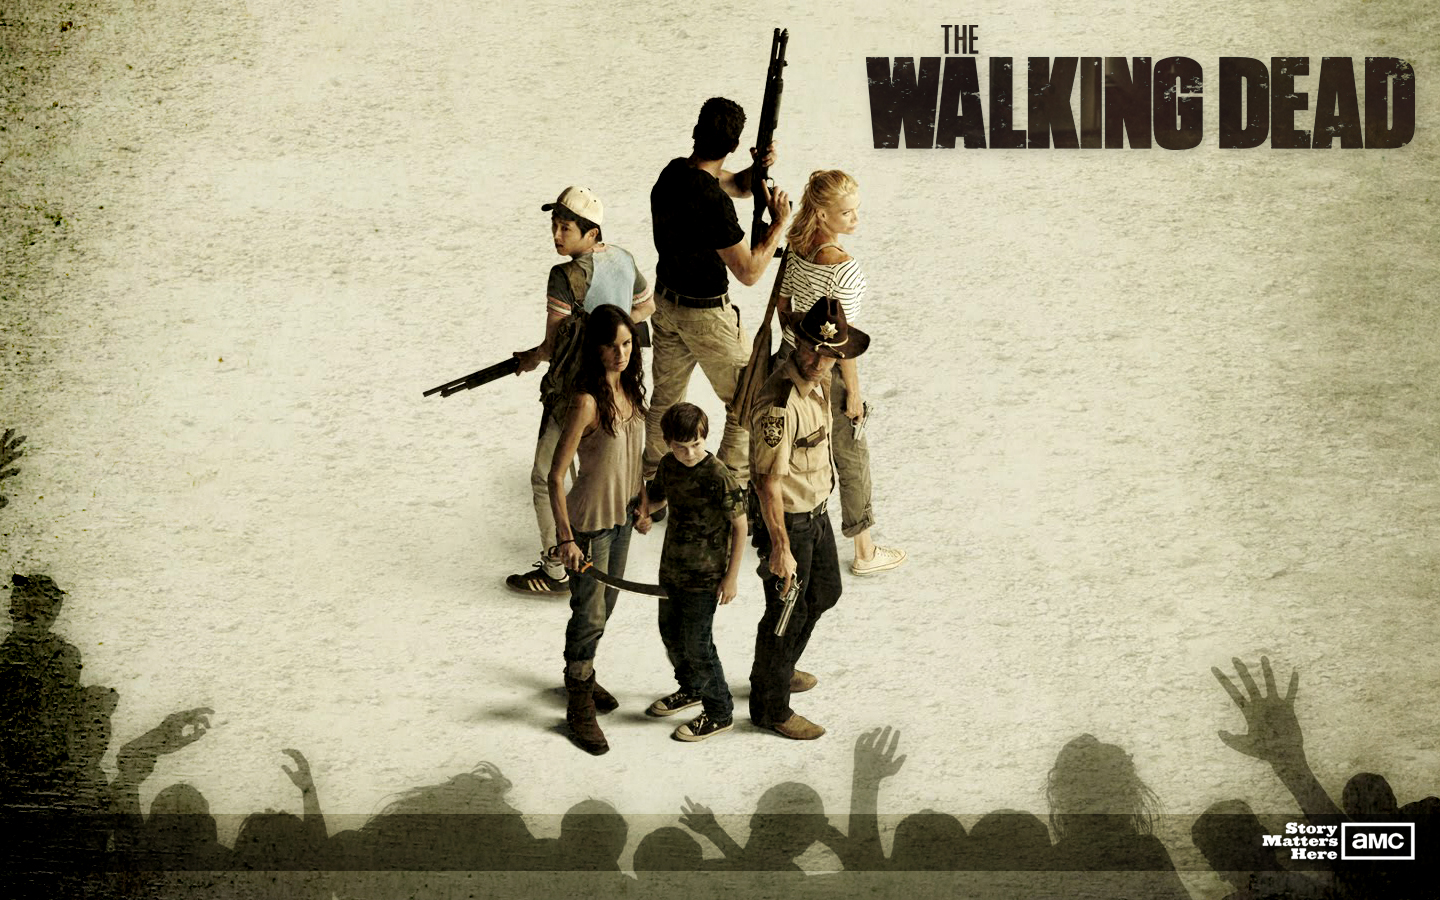 Walking Dead 01 Wallpaper Hd Wallpapers History